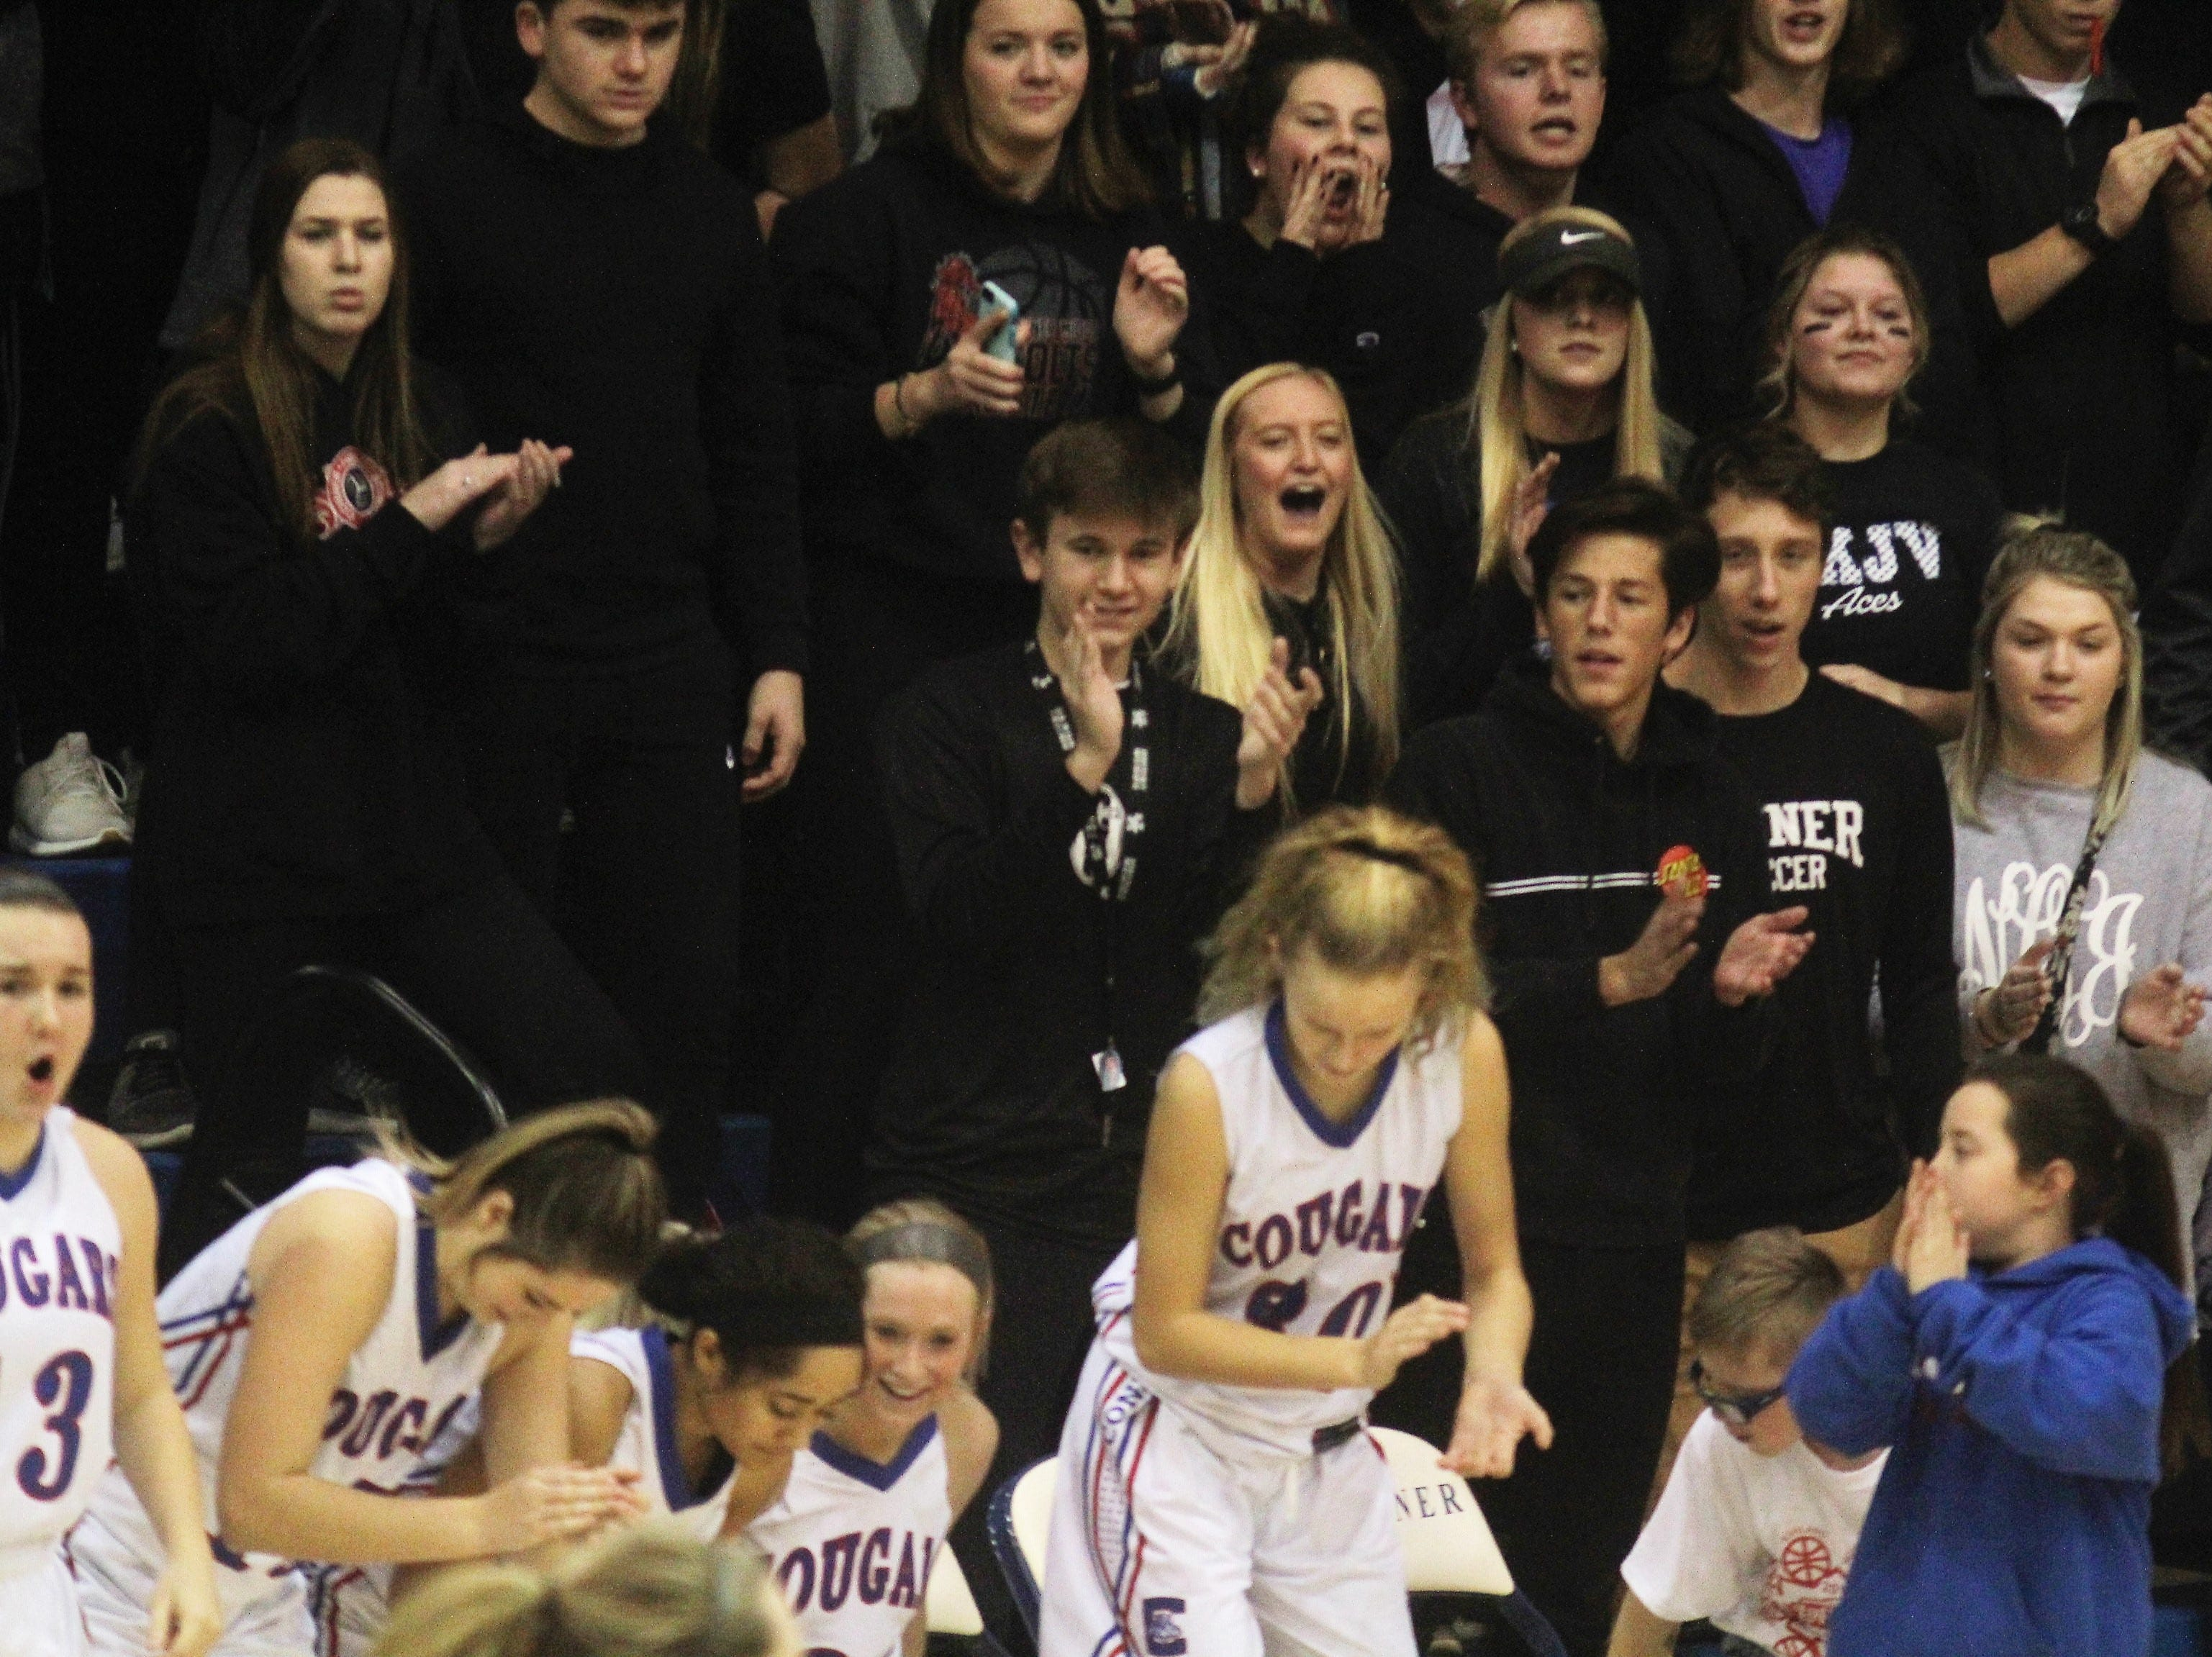 Conner students get into the action as Ryle defeated Conner 60-49 in a girls basketball district game Dec. 7, 2018 at Conner High School, Hebron KY.